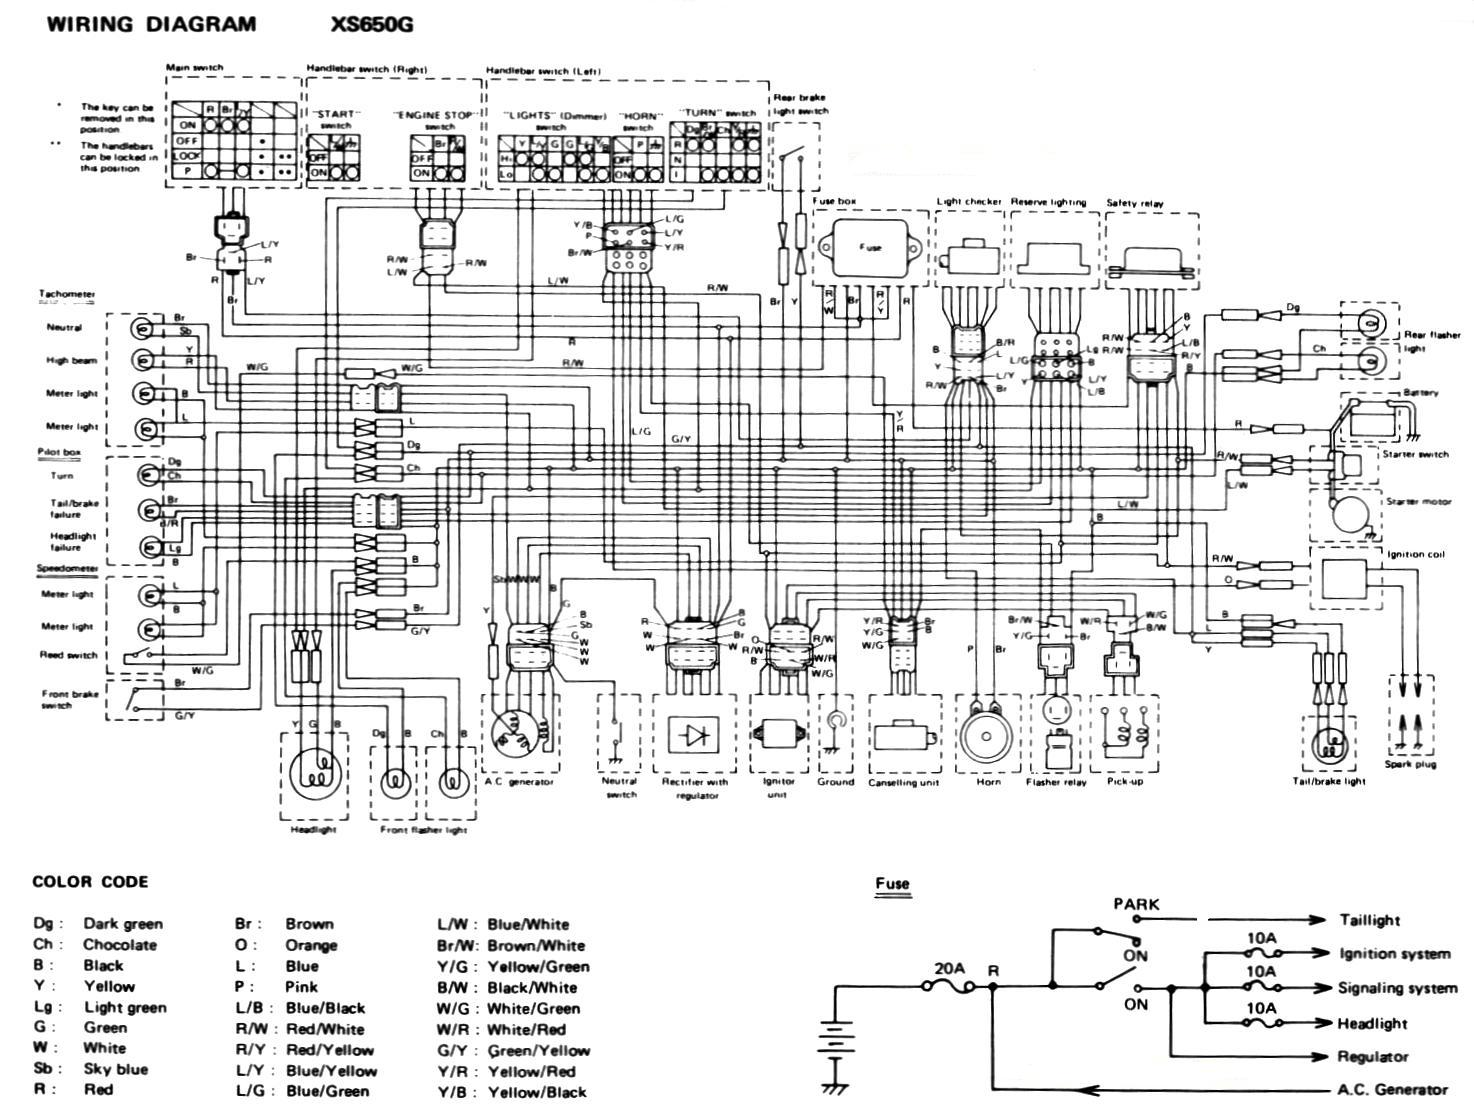 80XS650G wiring diagrams  at mifinder.co